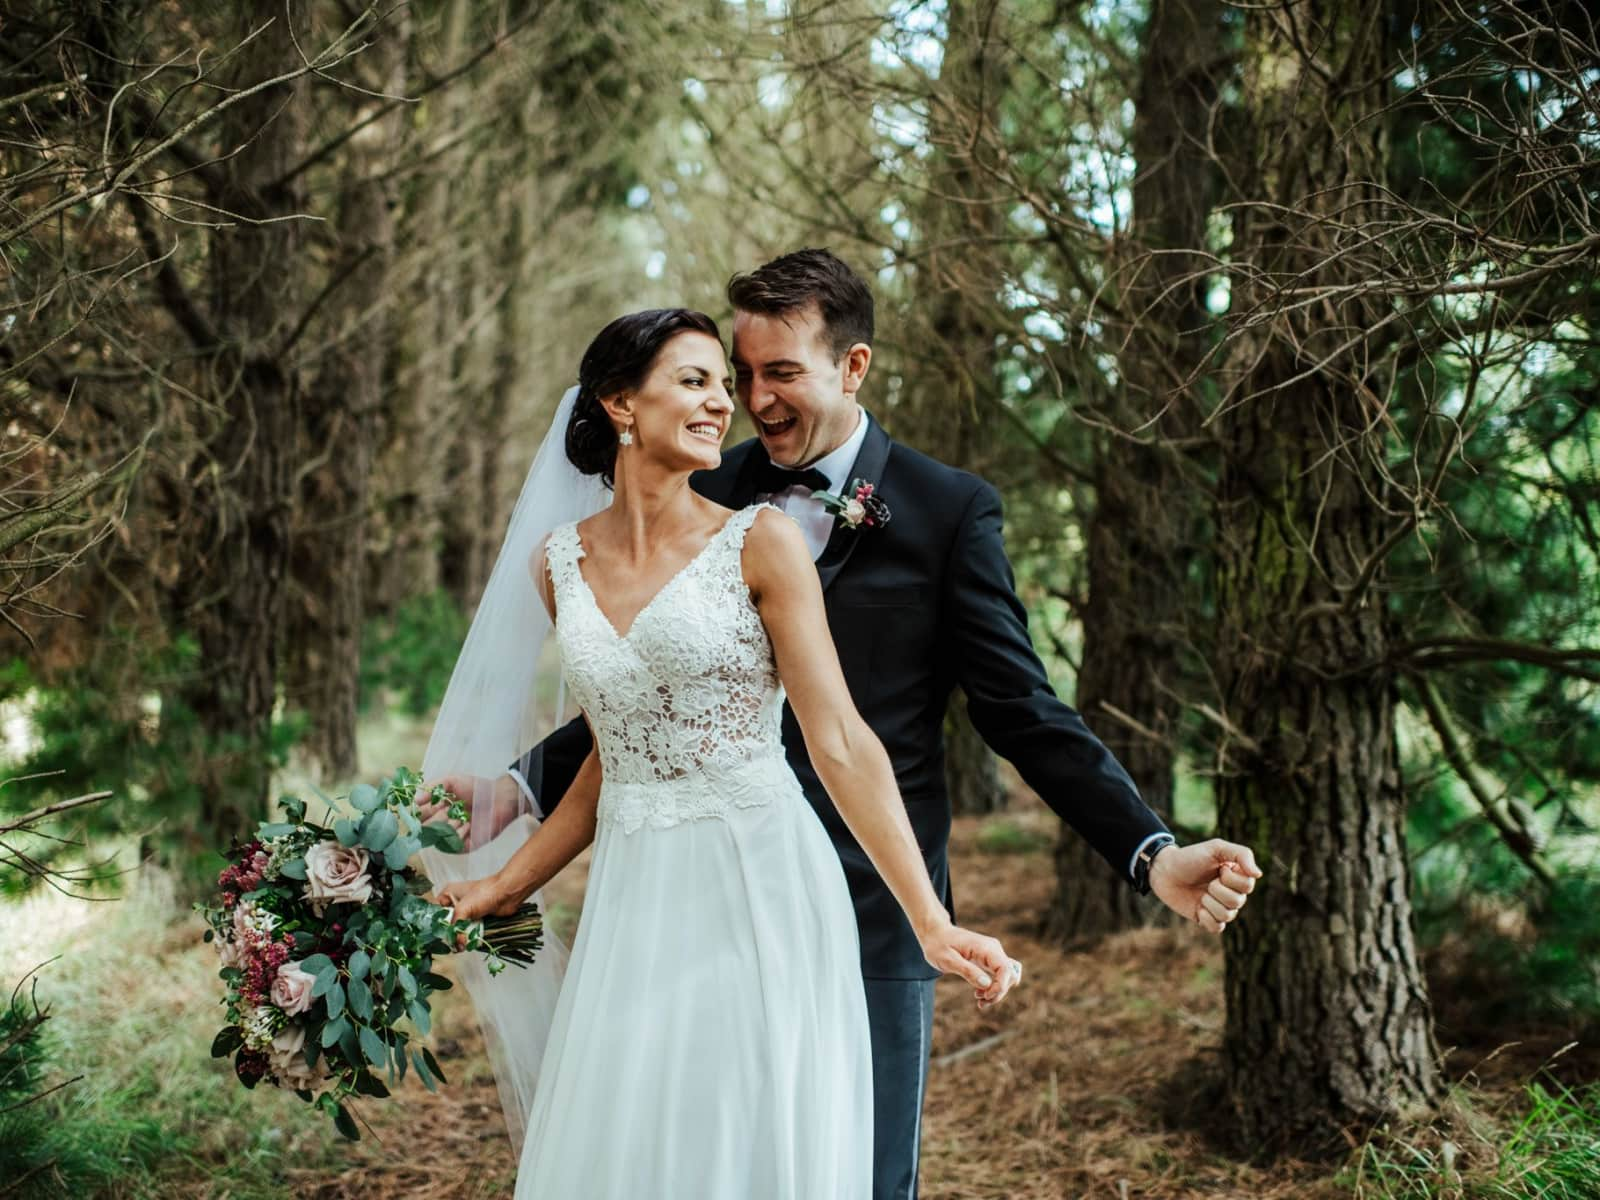 Kelly & David from Christchurch, New Zealand